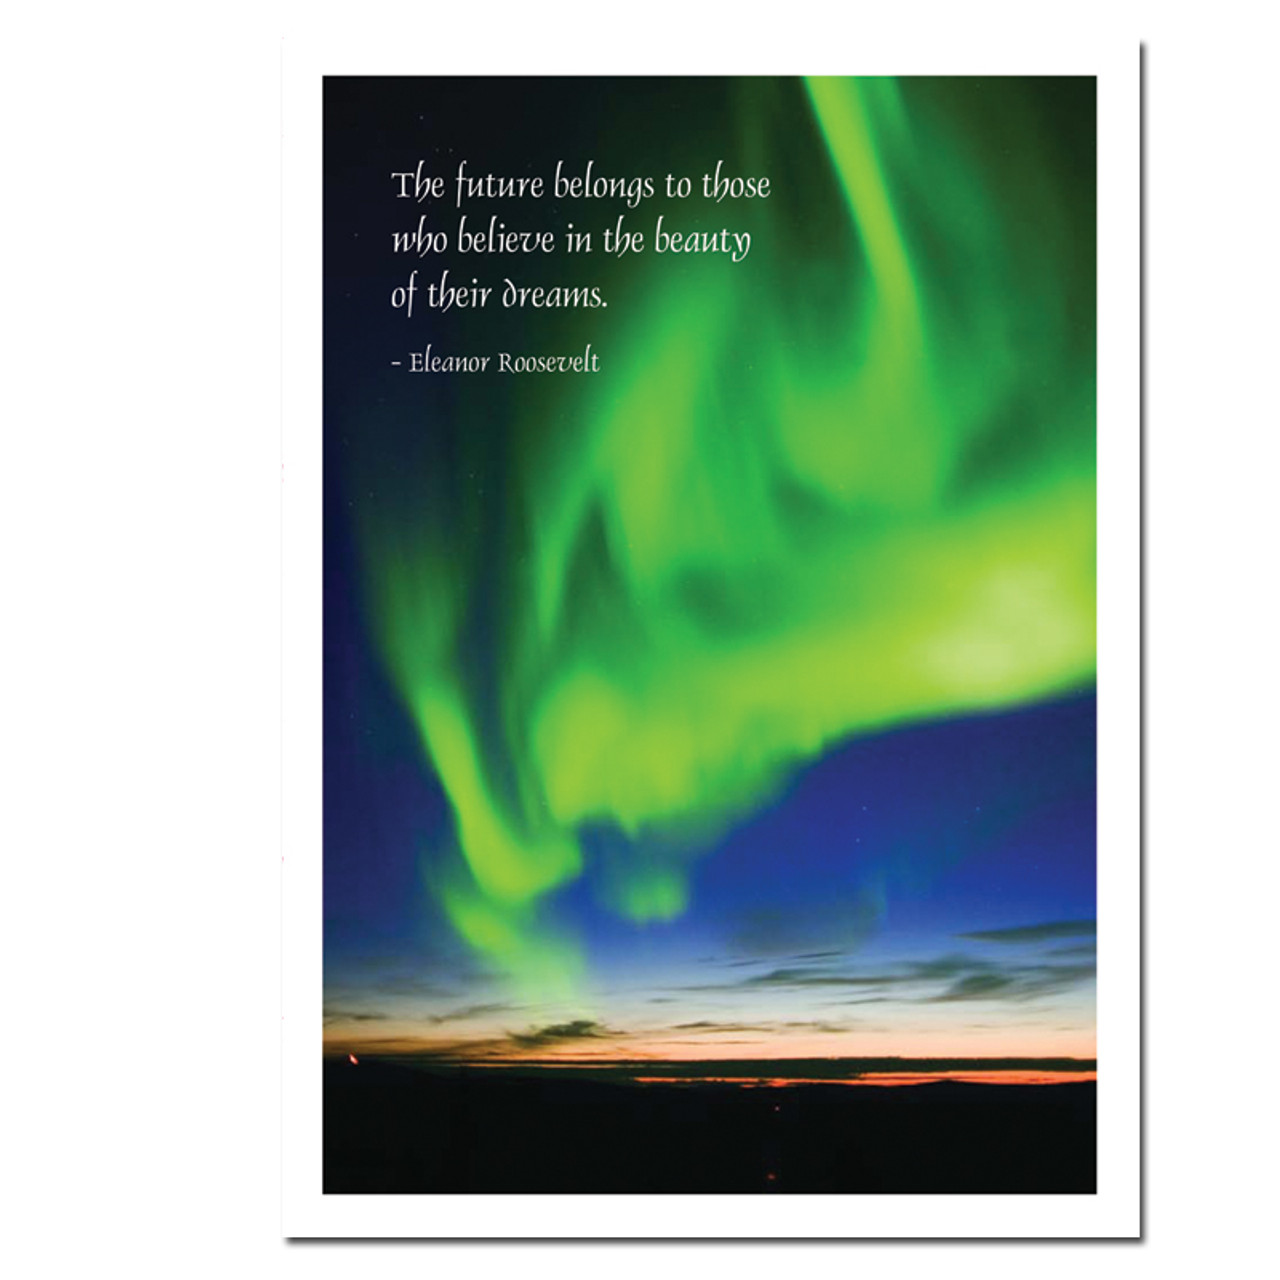 "New Years Card - Aurora Verde - Cover photo shows a bright green Aurora Borealis and the Eleanor Roosevelt Quote, ""The Future Belongs to those who believe in the beauty of their dreams"""